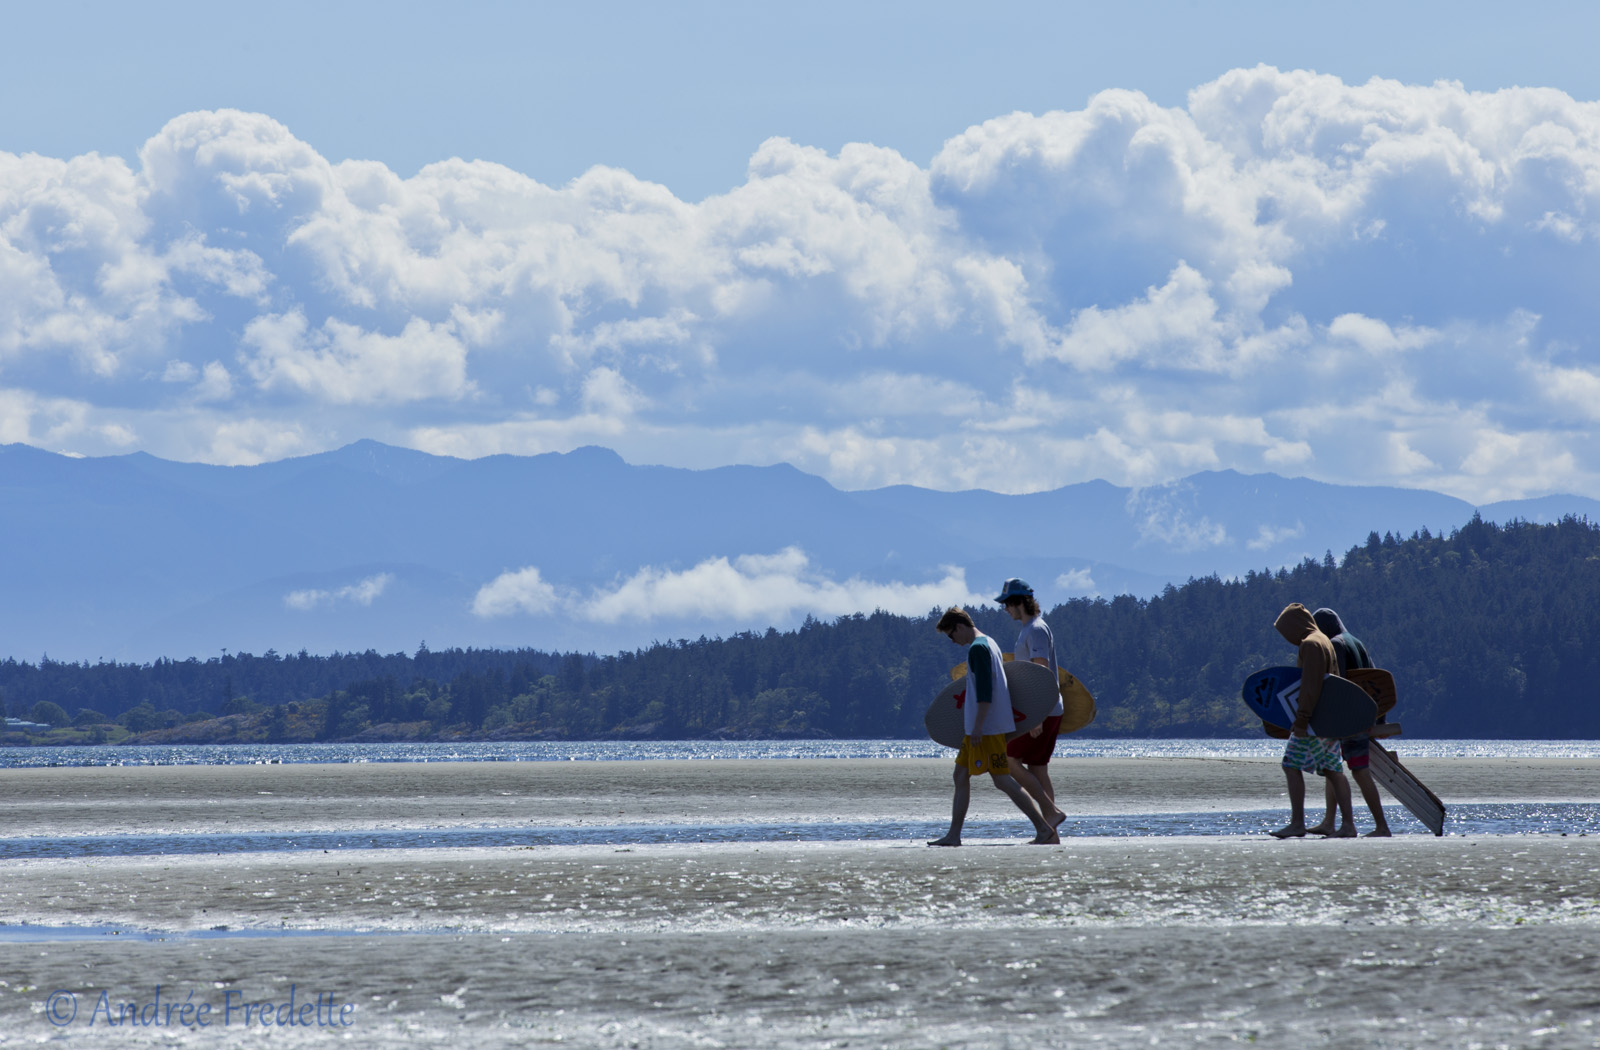 Boogie board teens, on the way to the water's edge, Witty's Lagoon, Vancouver Island, BC. Photo by Andrée Fredette